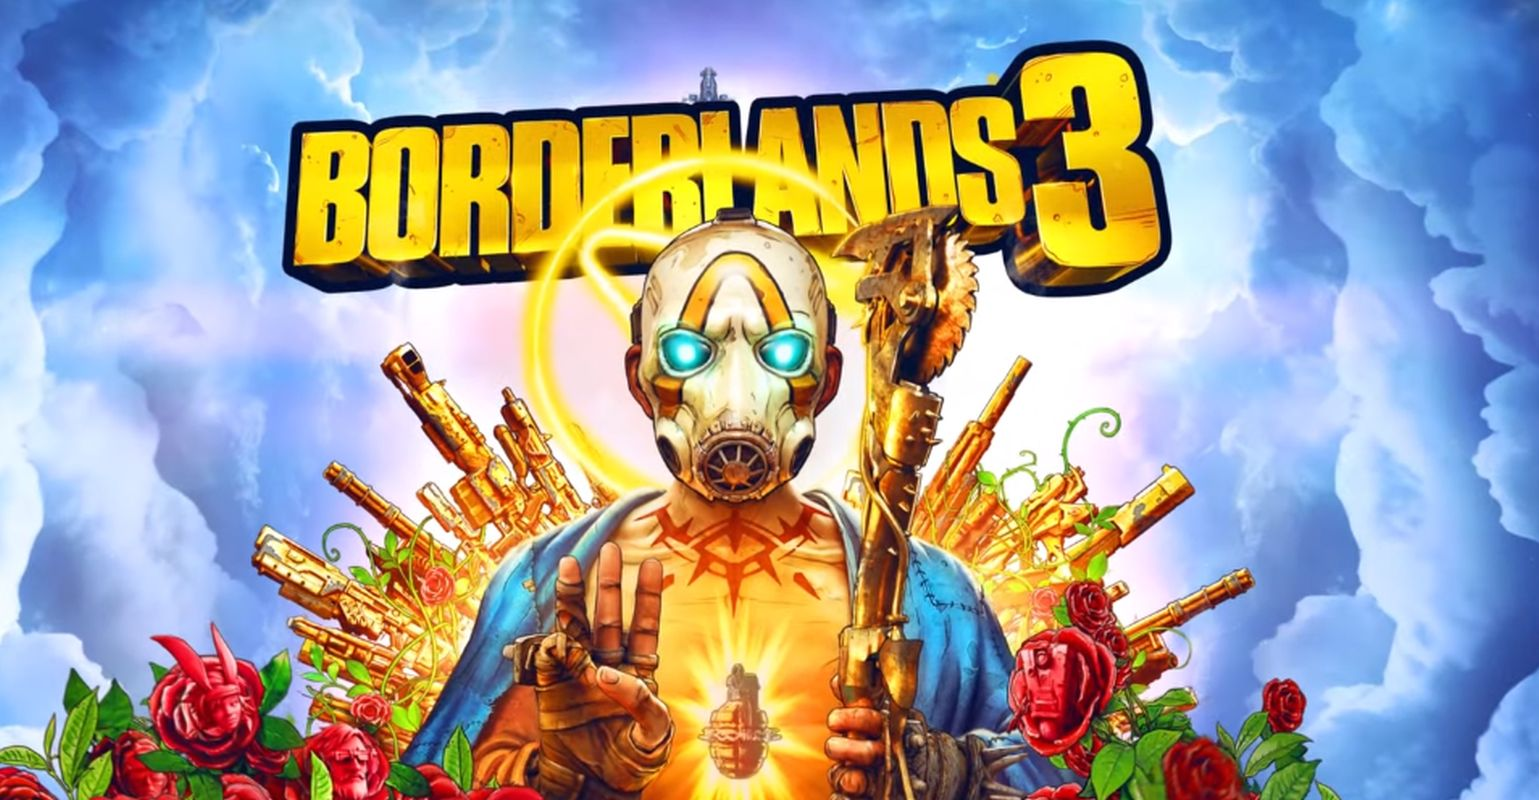 Borderlands 3 Art